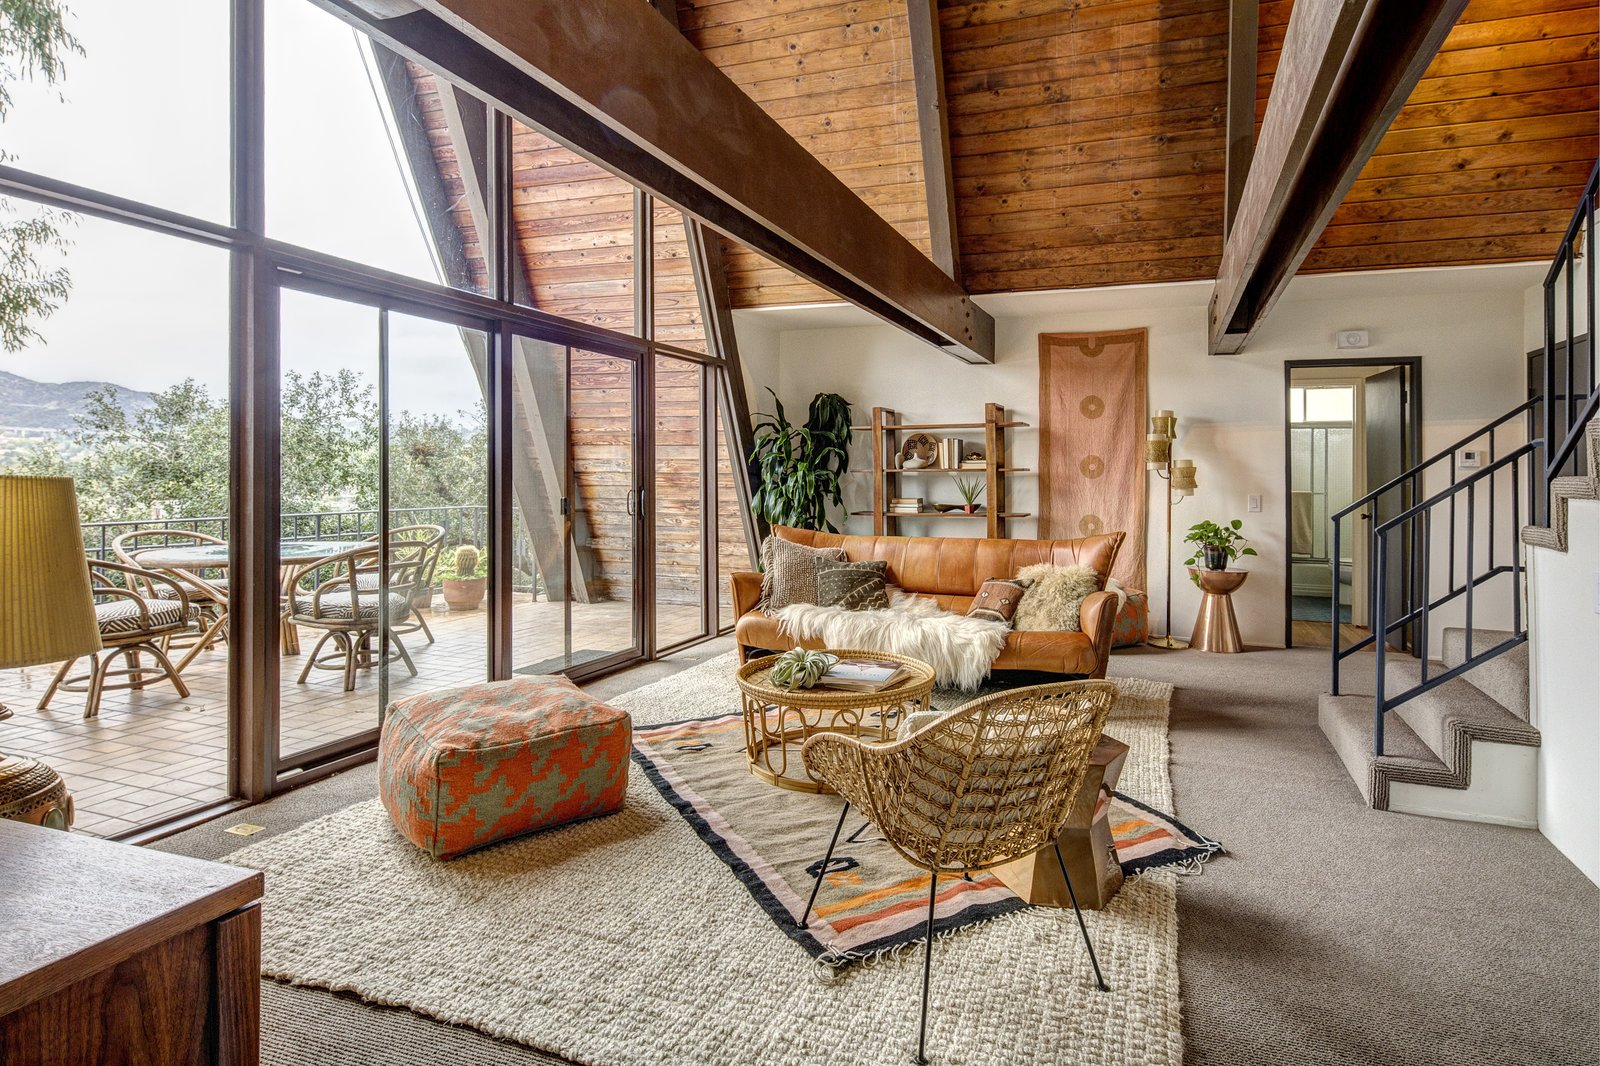 The home recently saw new roofing, carpeting, and painting, as well as an updated HVAC system. The glass northern exposure ensures that the space is awash in natural light.  Photo 5 of 10 in A Modified A-Frame Overlooking Los Angeles Starts at $699K